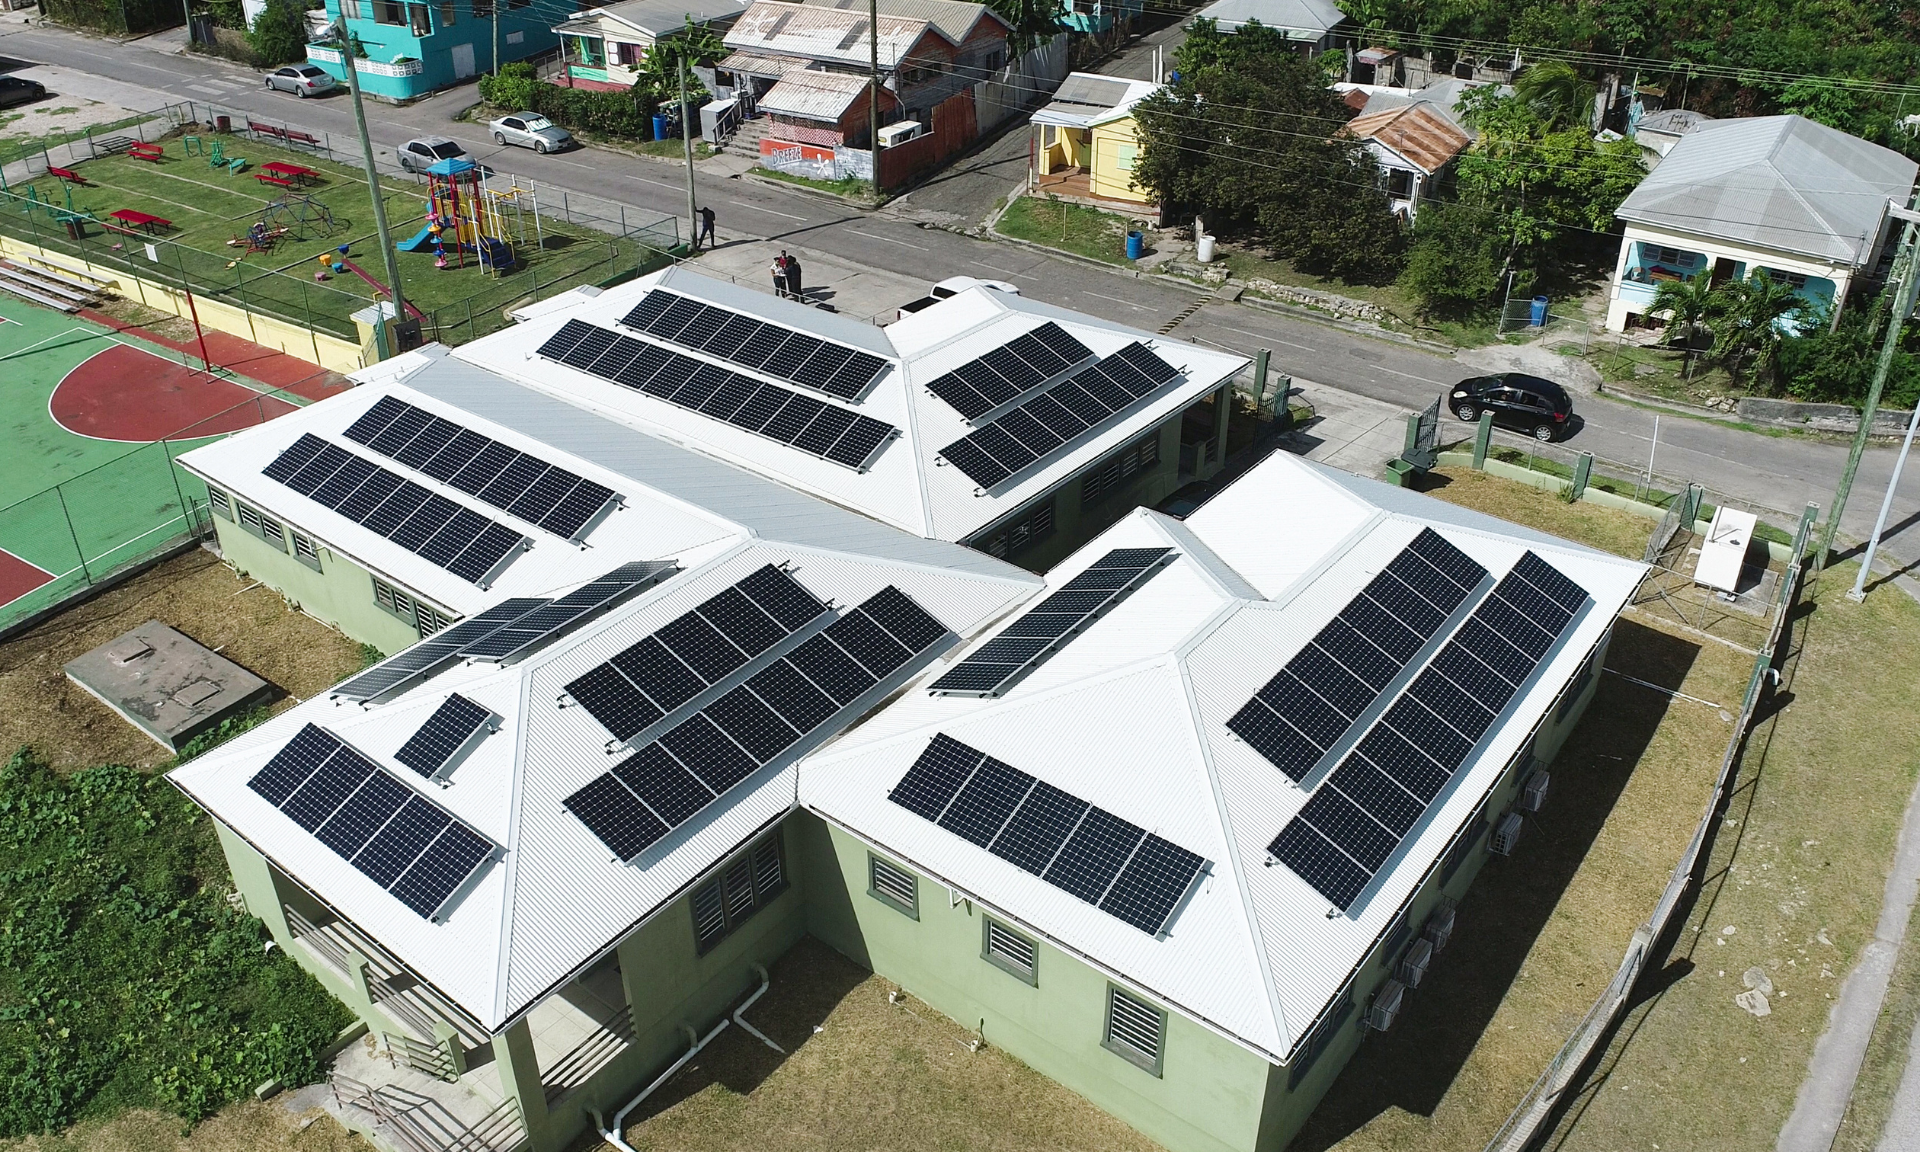 Solar panels atop Golden Grove Clinic. Savings on imported fossil fuels will be used to fund a national housing insurance scheme to offer disaster recovery plans.